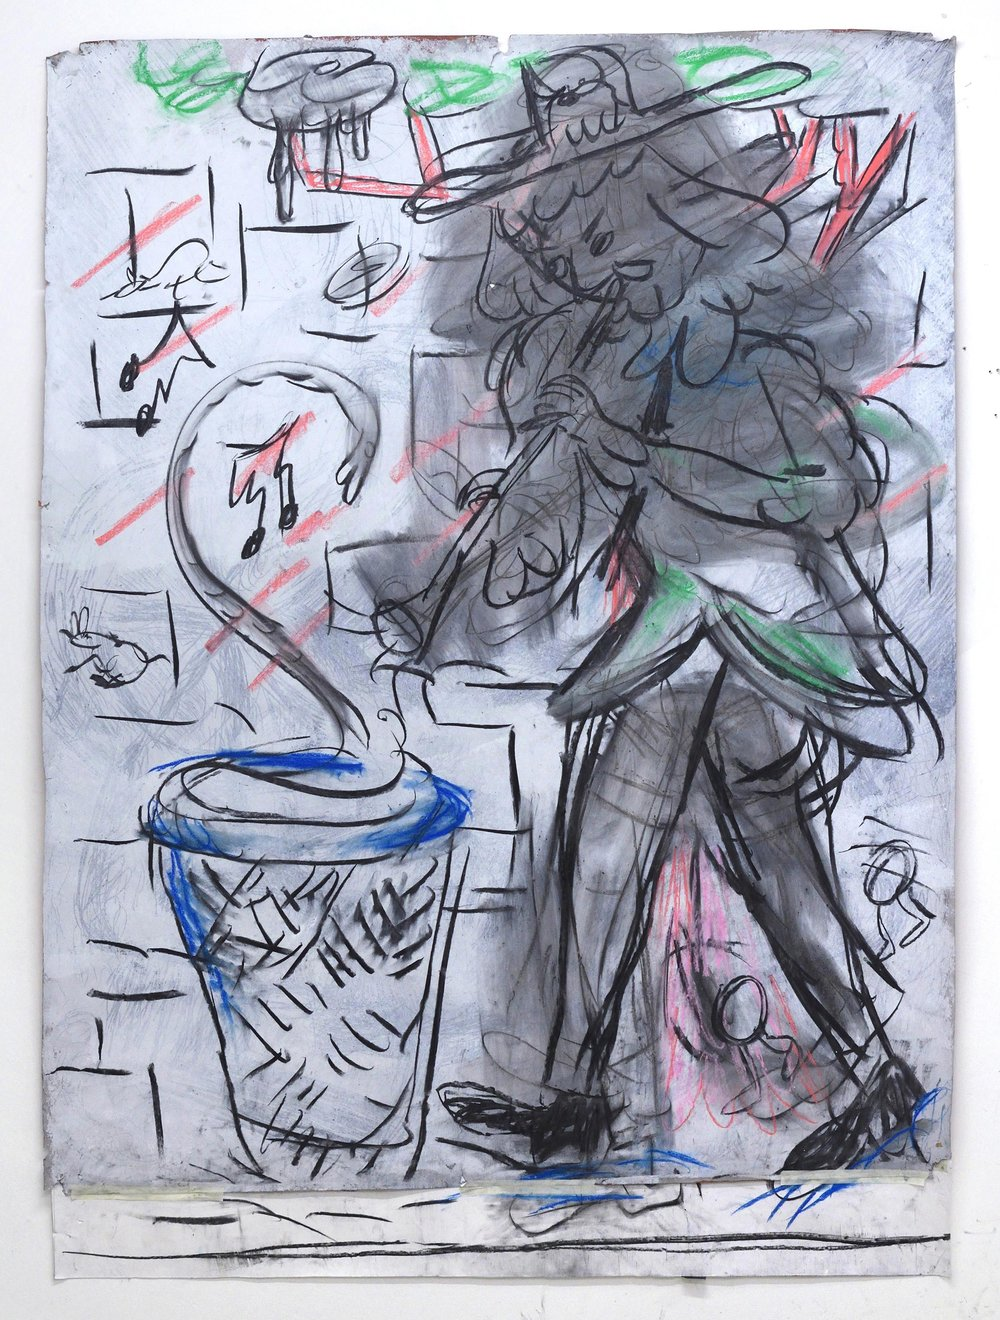 'Deaf piper pied charmer' 2018     Charcoal and pastel on primed paper. 200 x 150 cm